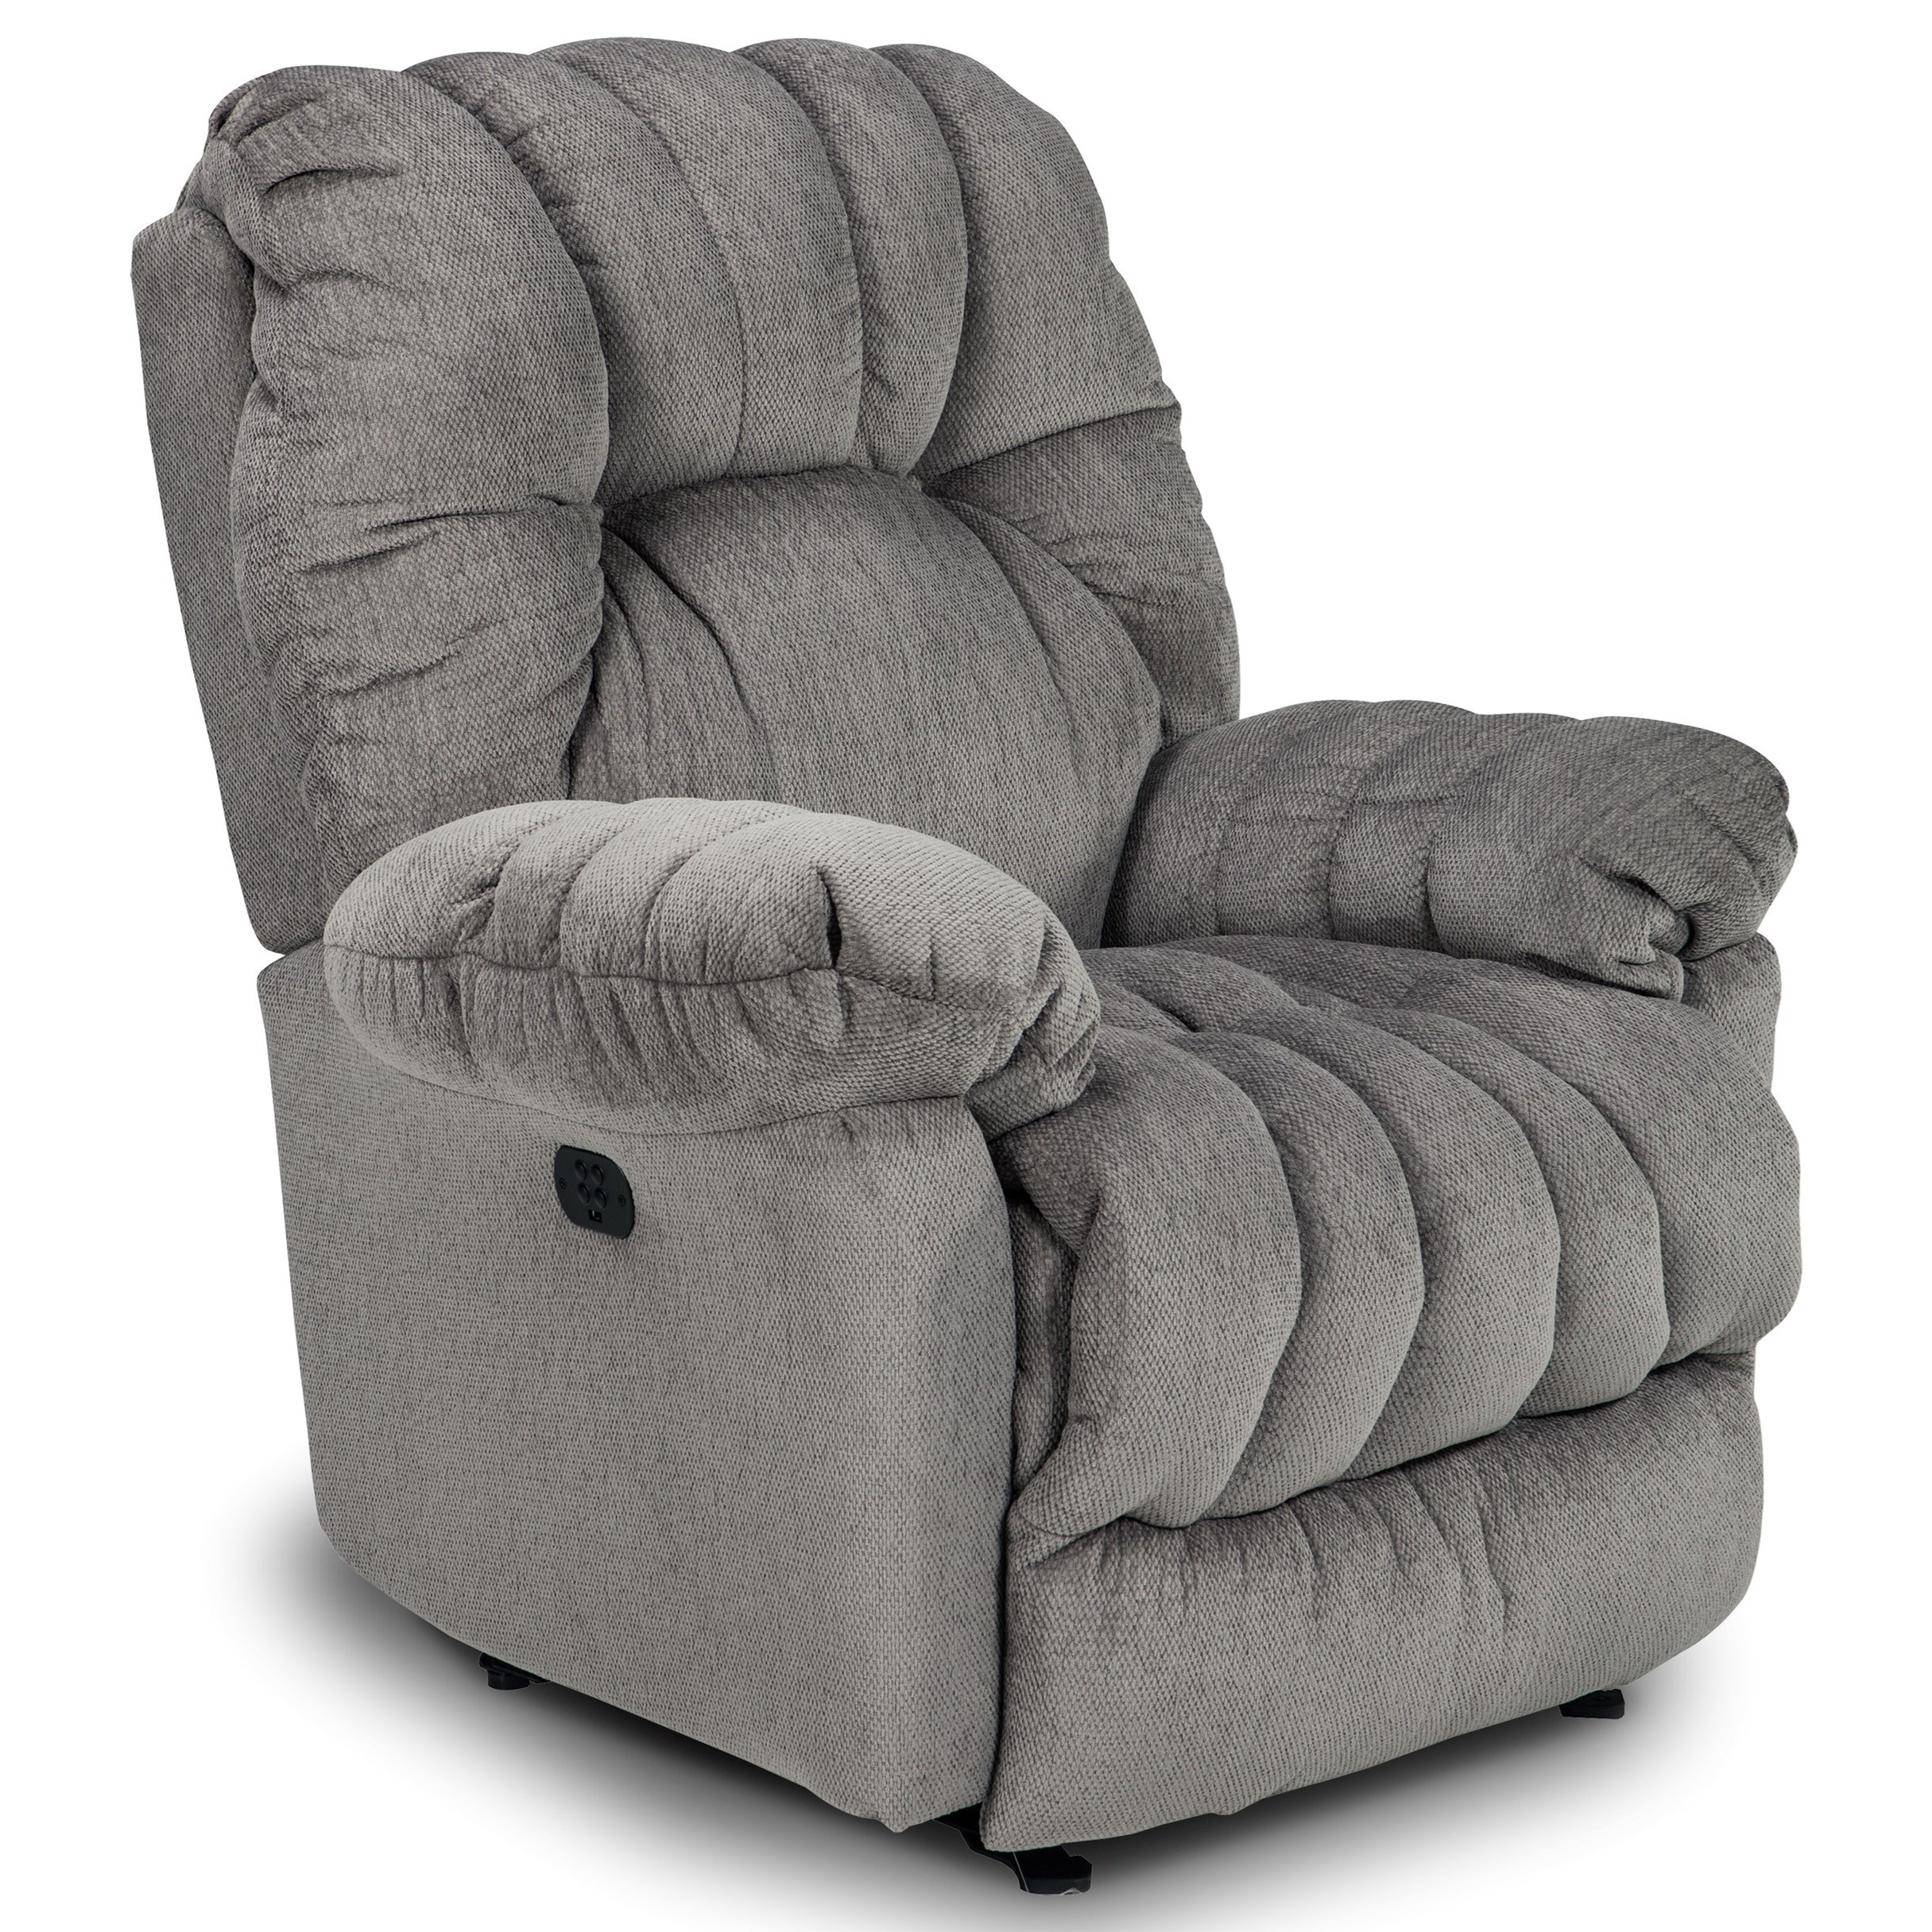 Power Rocker Recliner w/ Pwr Head